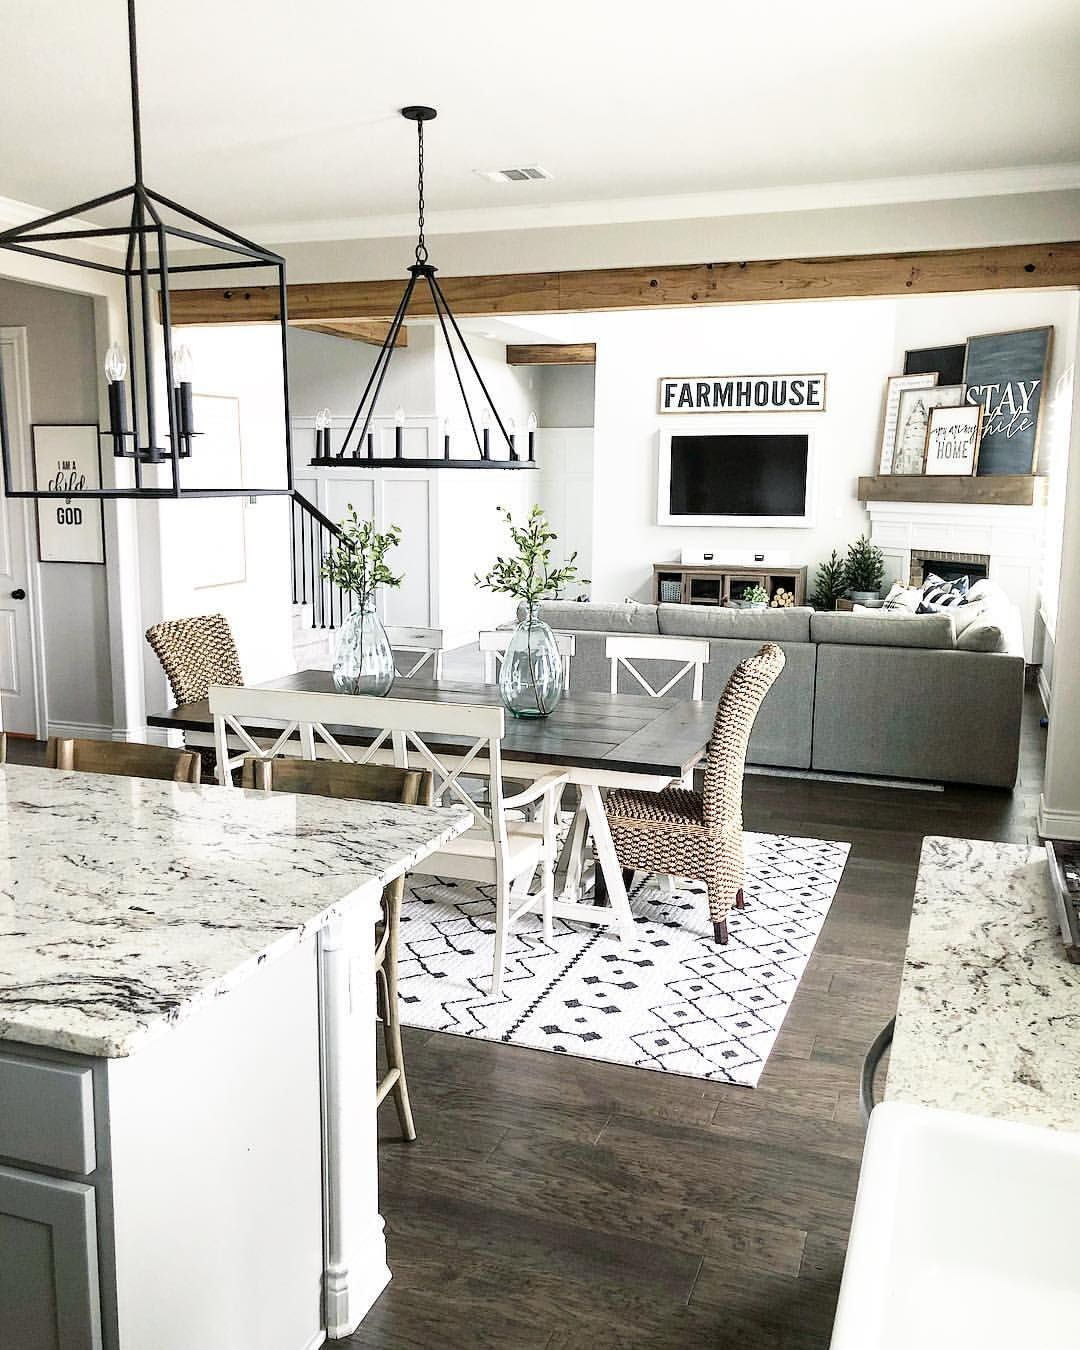 The Images Collection Of Modern Farmhouse Tour Interior: Farmhouse Style Open Layout With Kitchen, Dining Room And